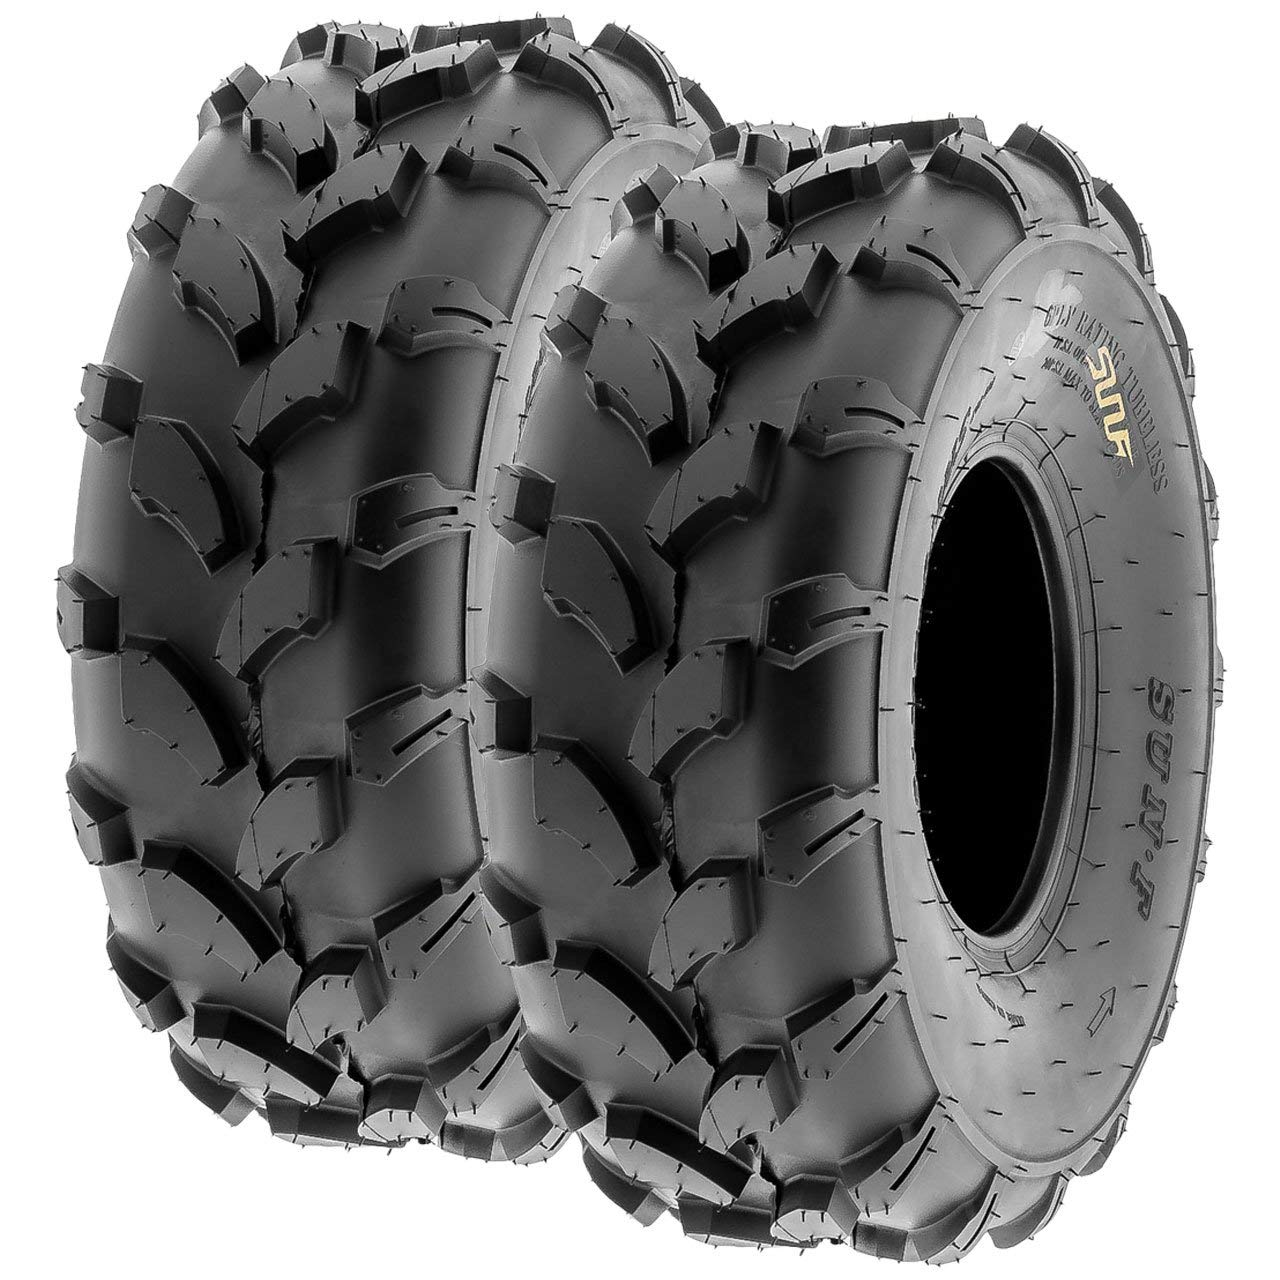 The ROP Shop New Pair 2 Link TIRE Chains 18x7x8 fits Many Polaris Ranger RZR UTV Vehicle